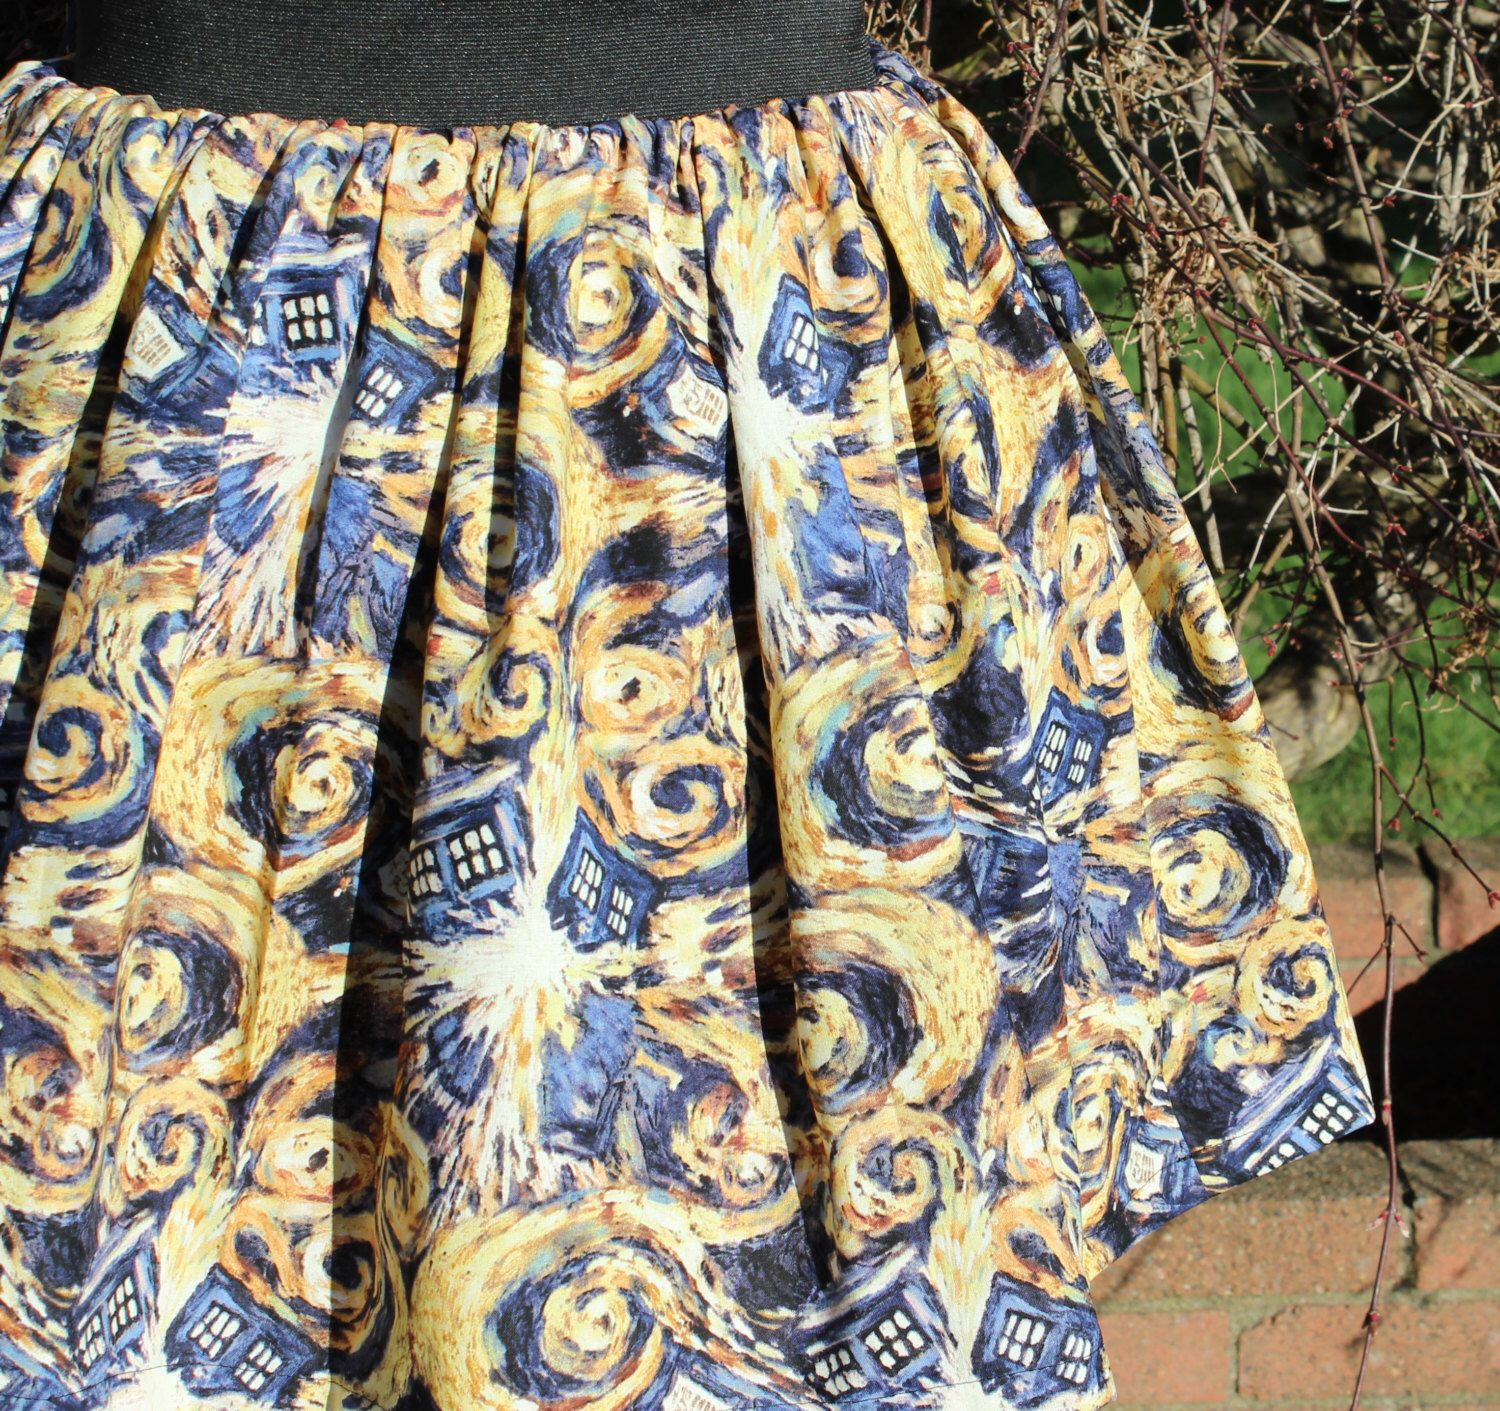 Elastic Waist Skirt Made From Tardis Van Gogh Fabric by NiceRiceShop on Etsy https://www.etsy.com/listing/225488950/elastic-waist-skirt-made-from-tardis-van